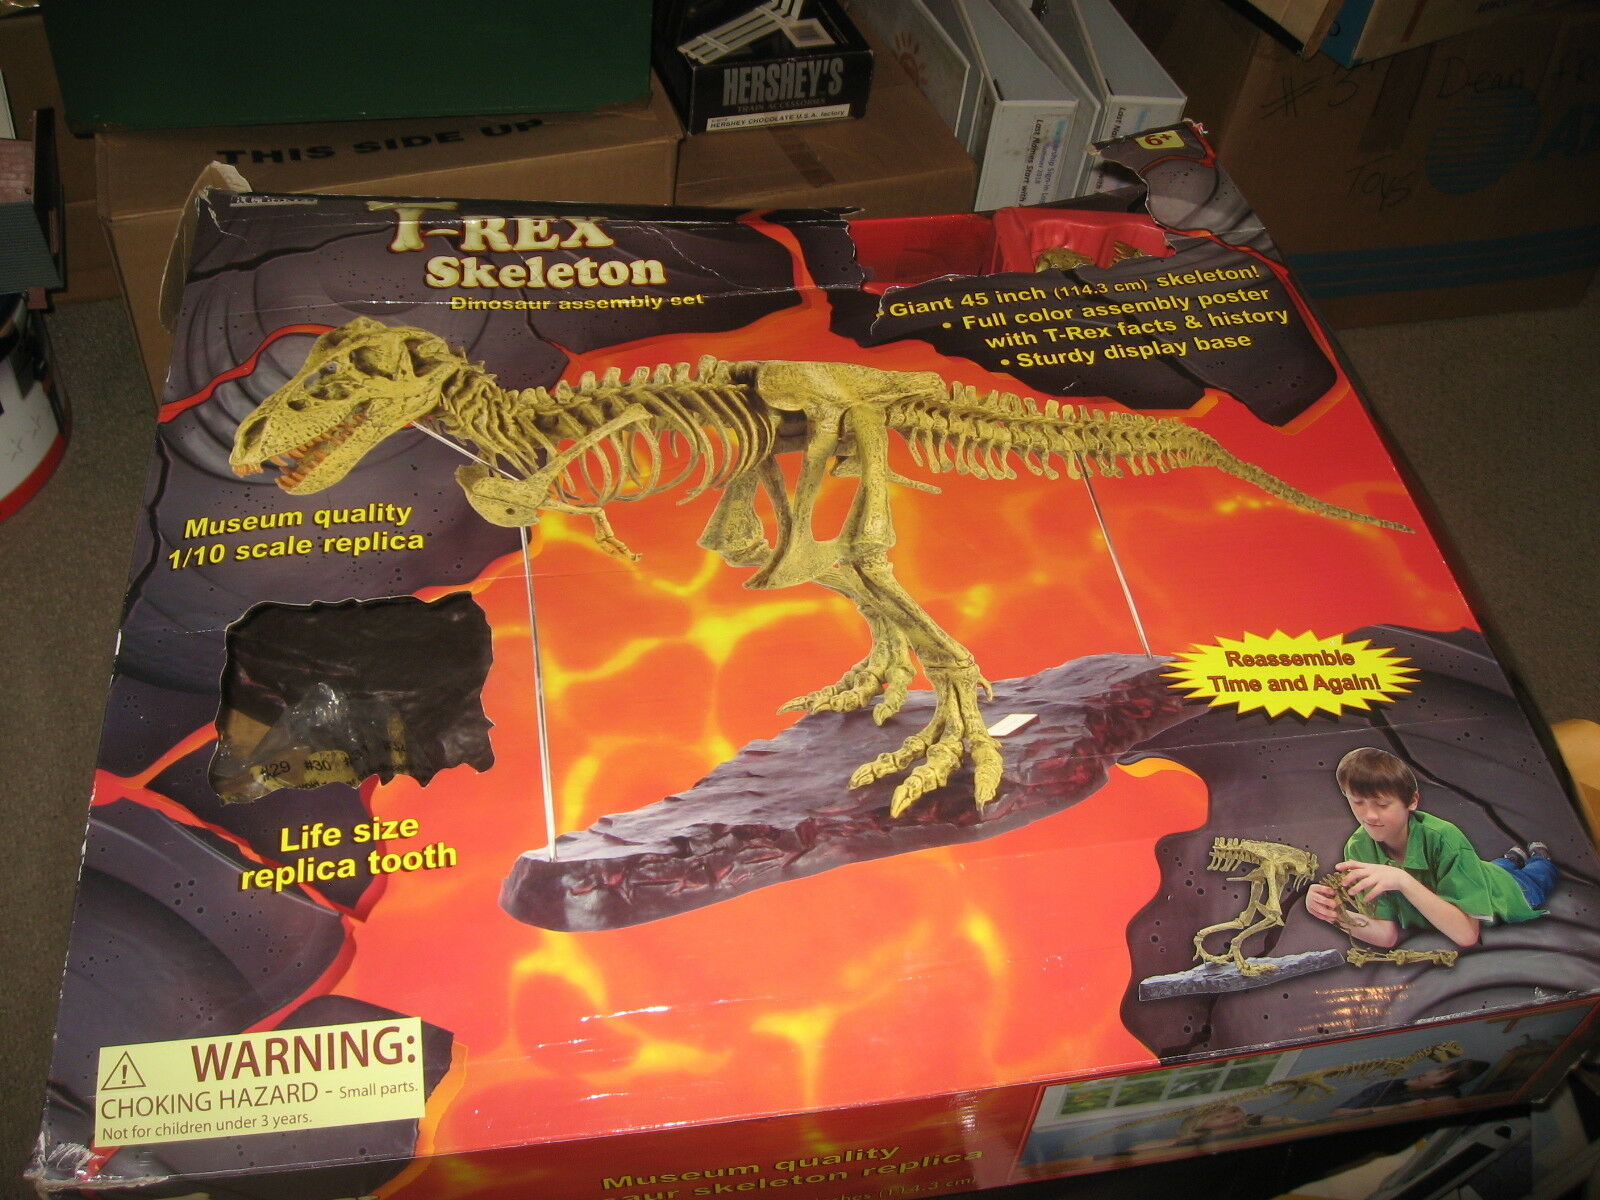 B.C. BONES T-REX SKELETON 45  long Dinosaur Model kit 1 10 Scale - NEW